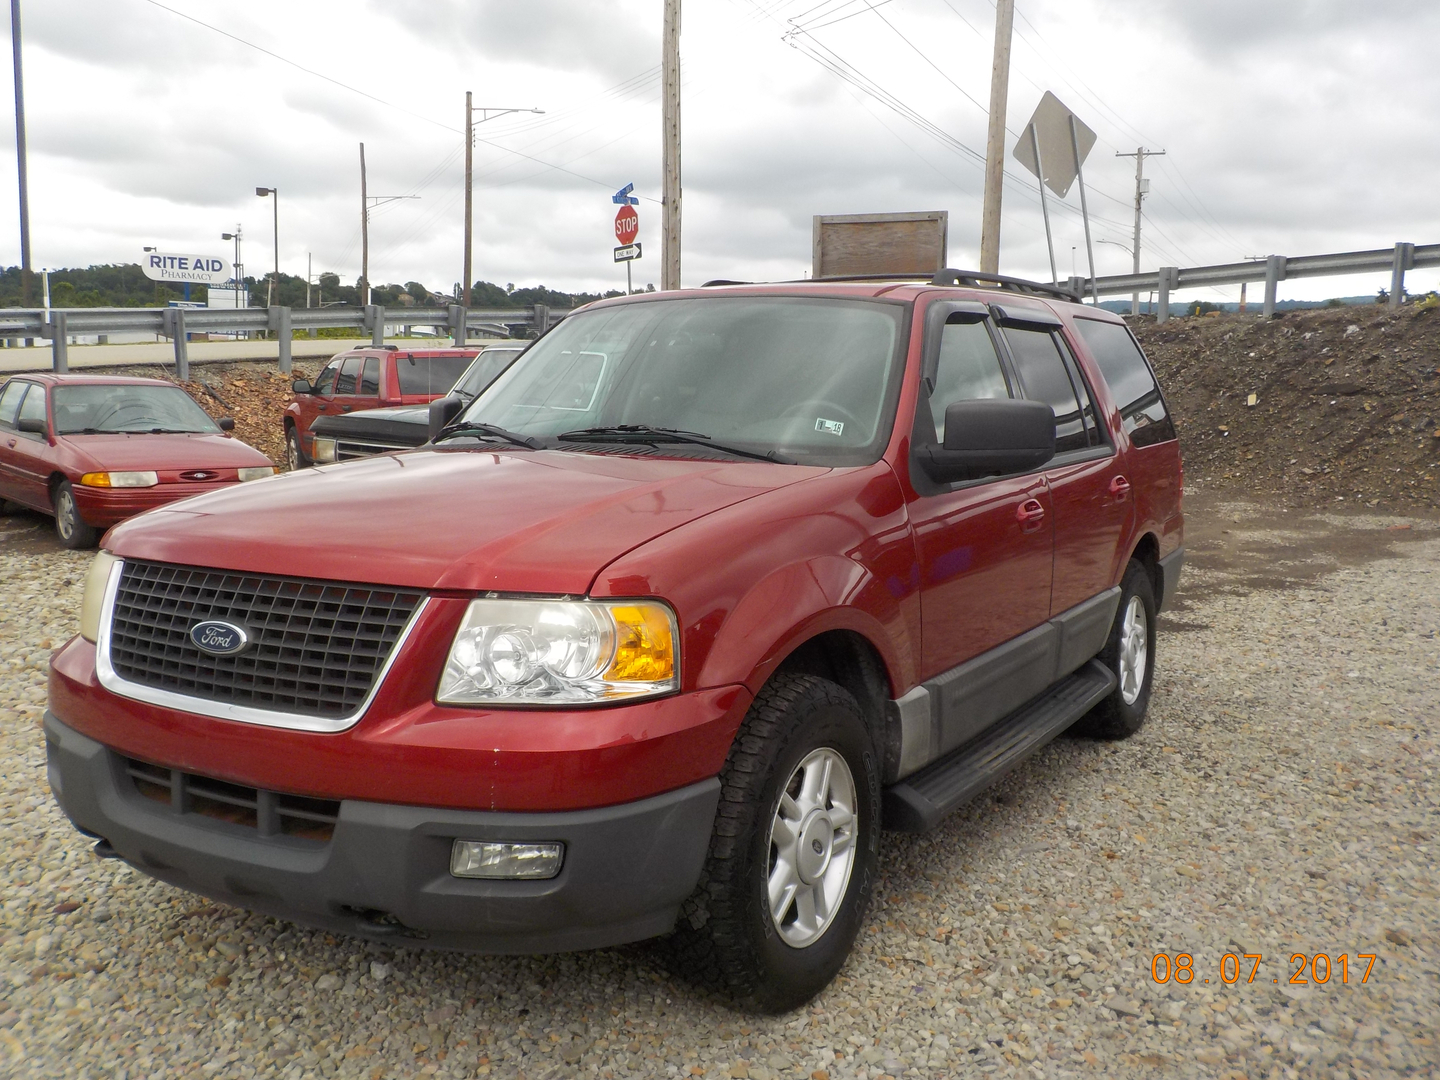 2005 ford expedition 5495 00 leather seats third row seat towing package power windows locks mirrors driver s seat cruise control fog lights